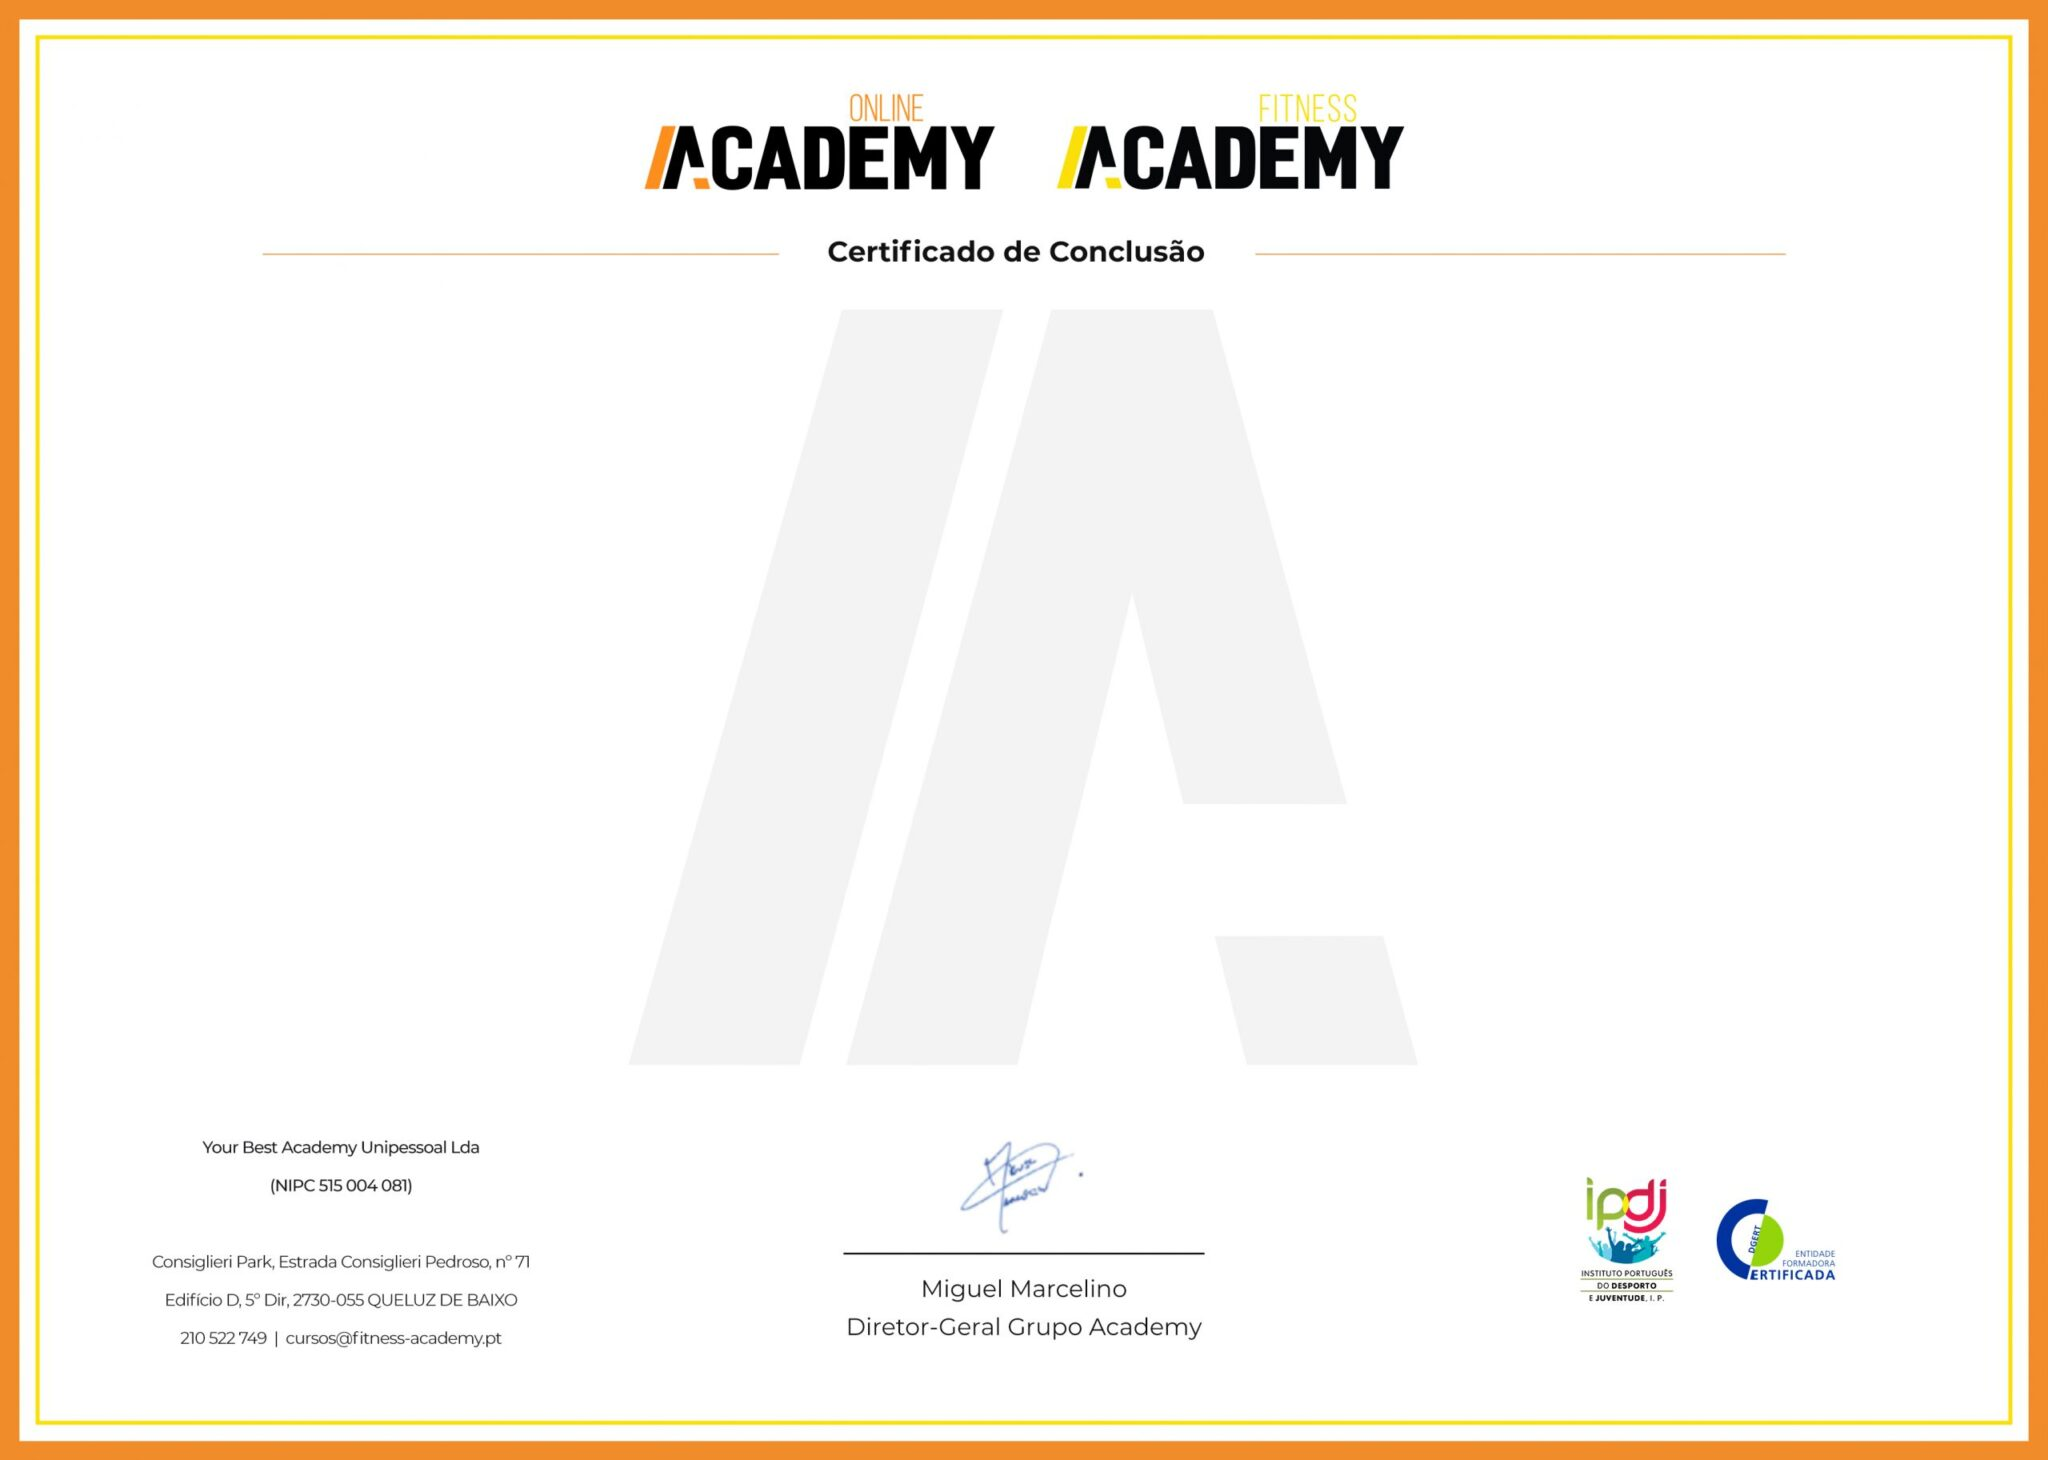 Visual Certificado Online Academy Fitness Academy 2 scaled